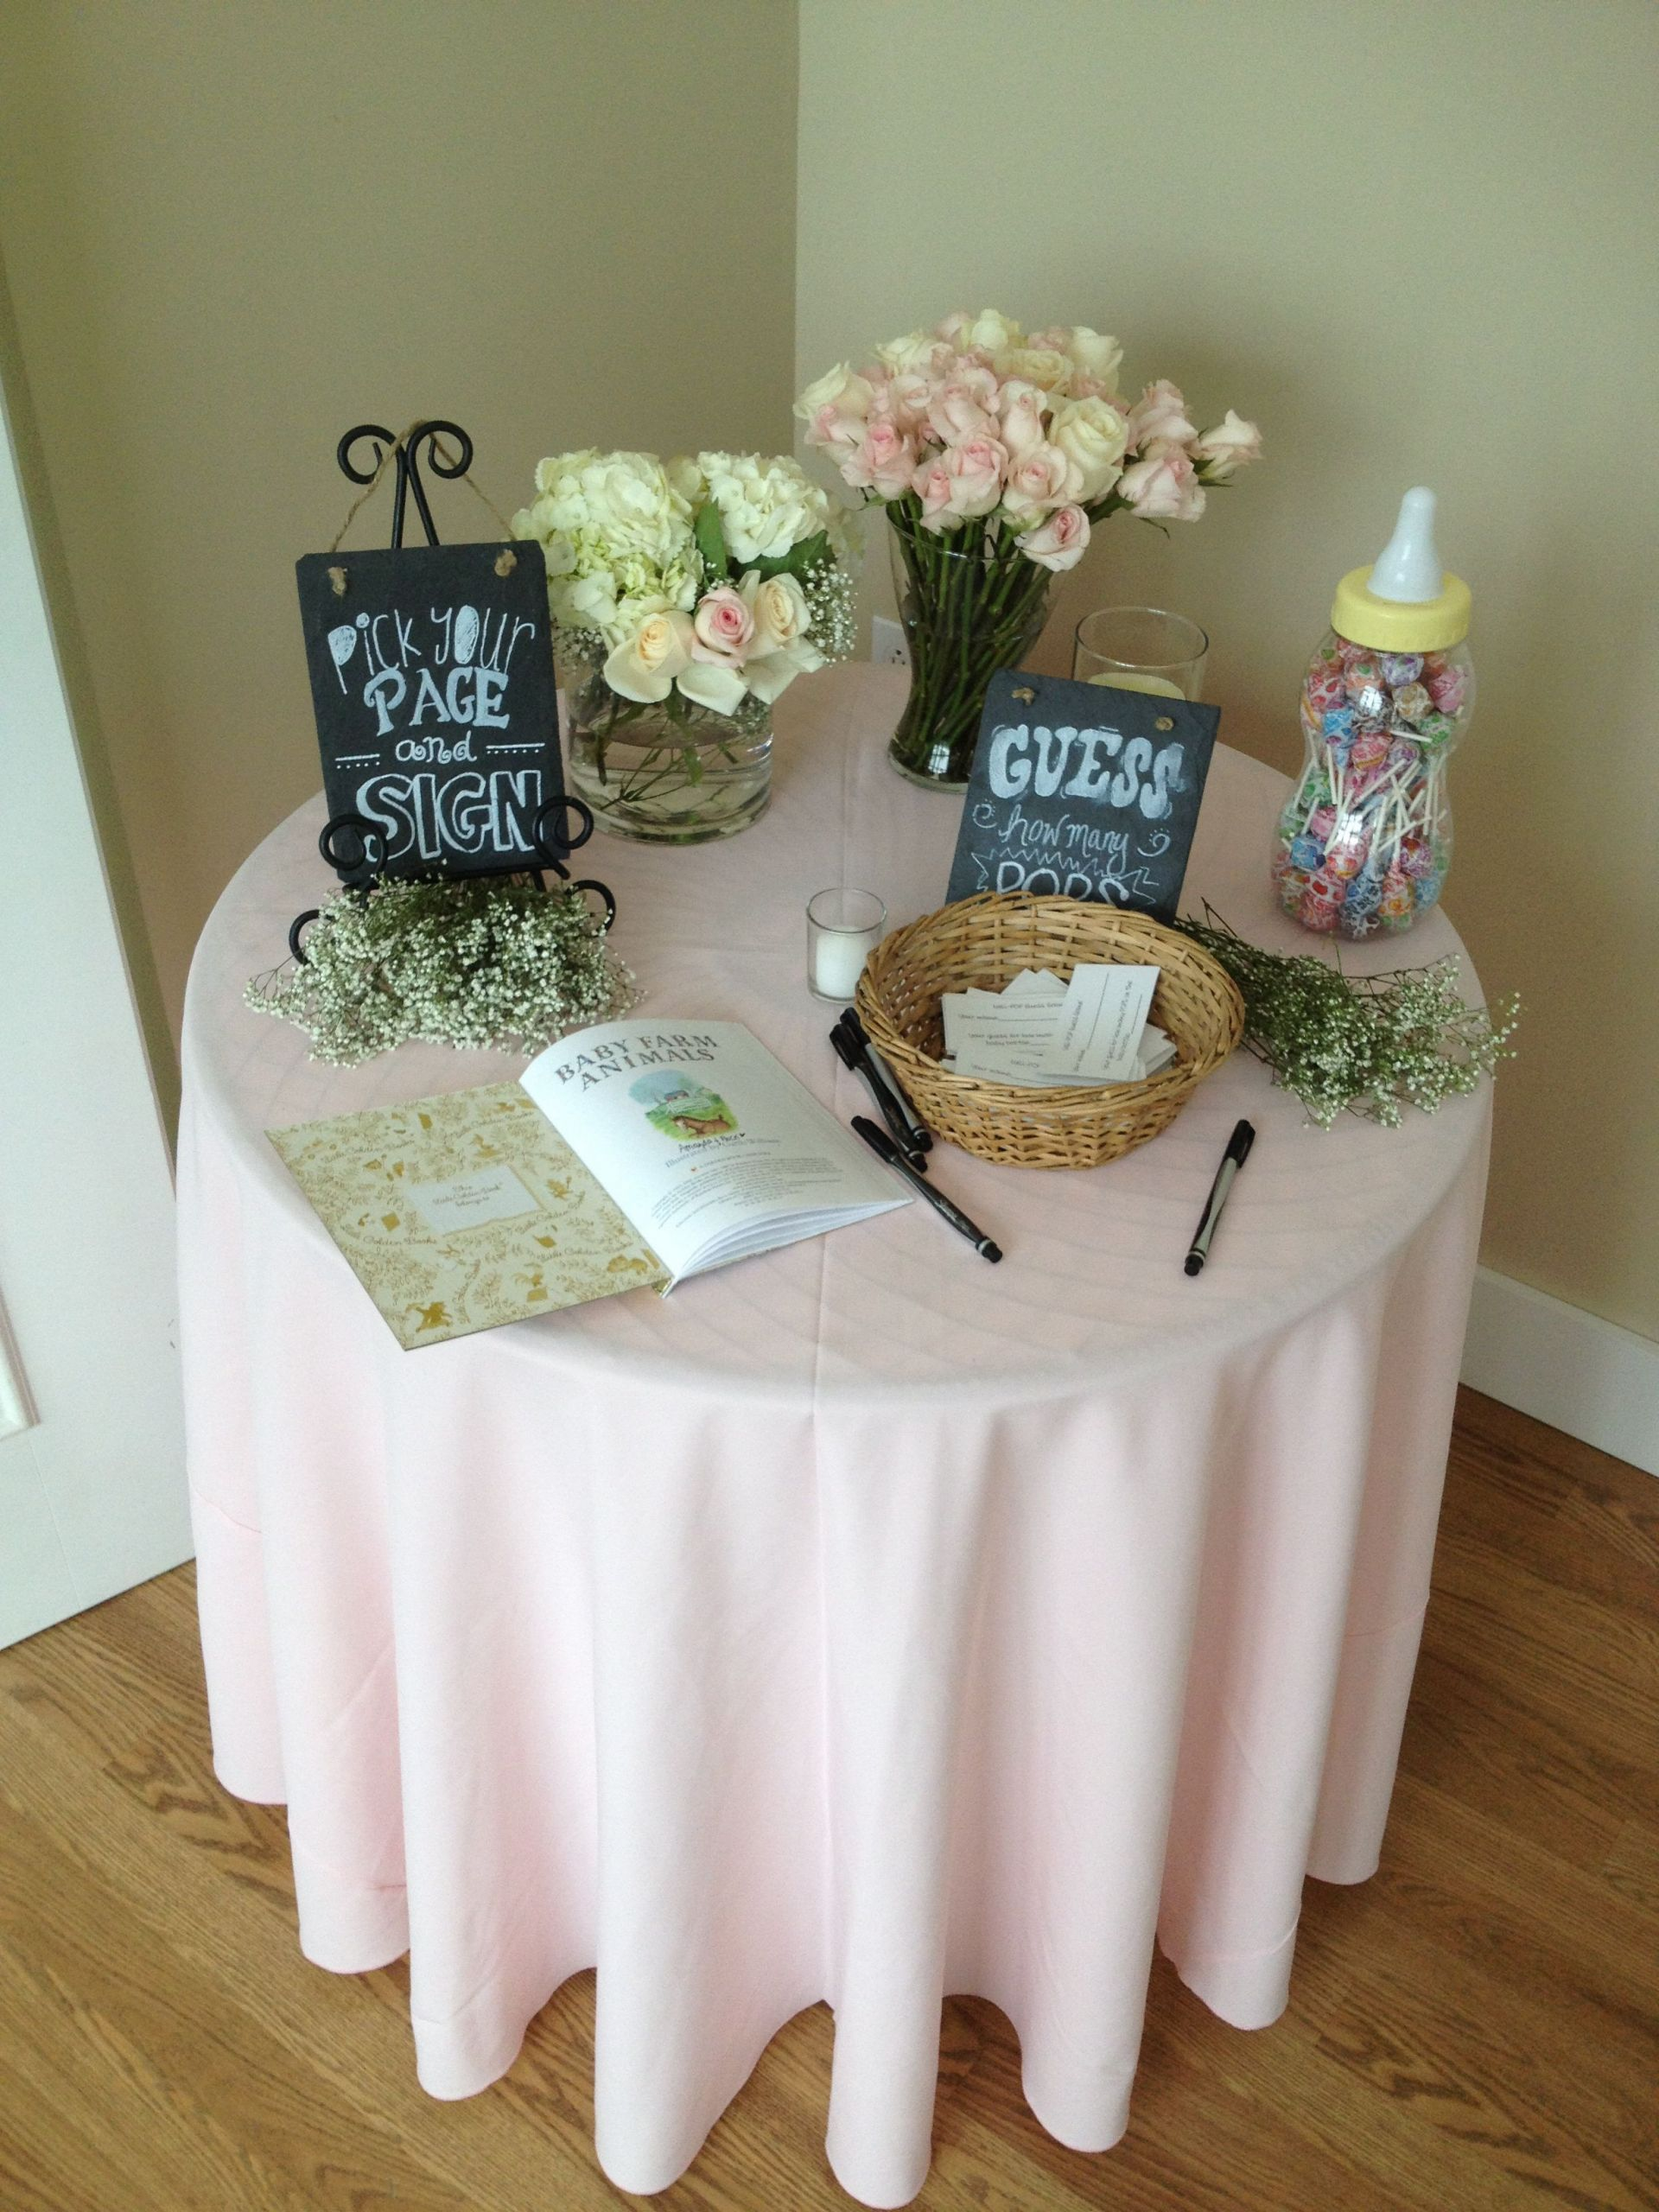 Decorating Ideas For Baby Shower Gift Table  Entrance Table at a baby shower Our Events